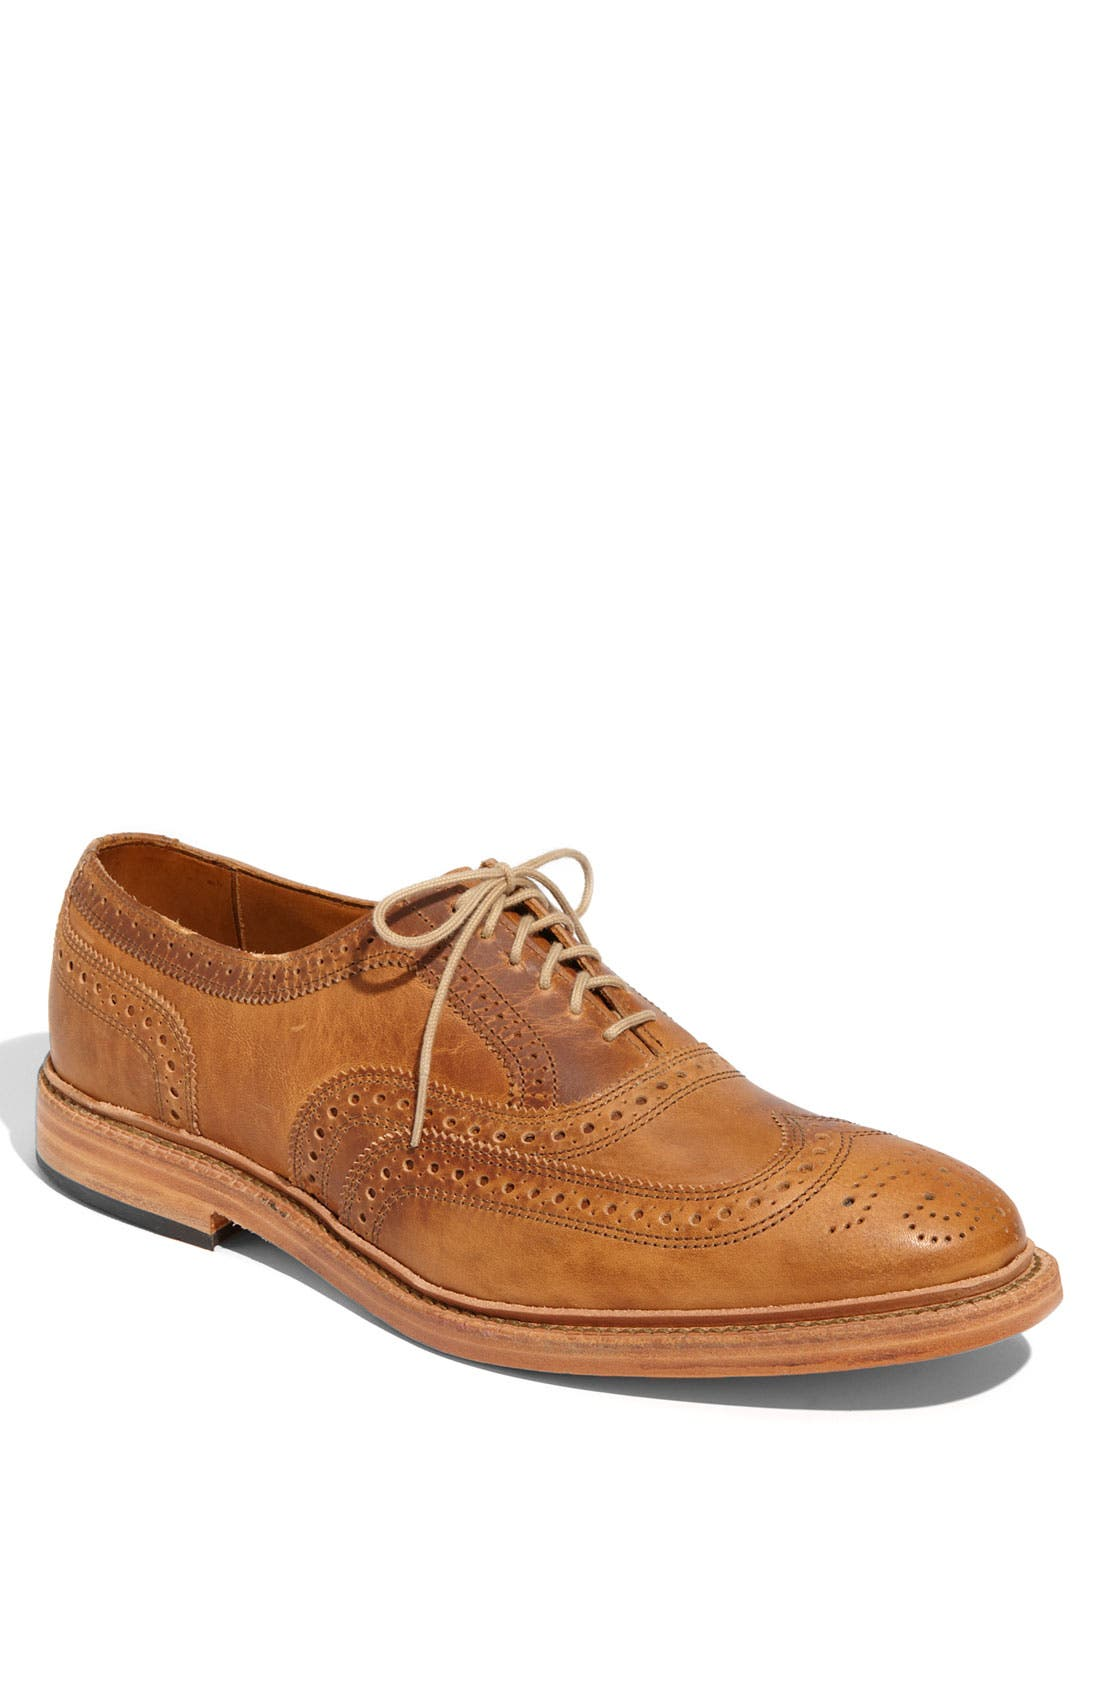 Alternate Image 1 Selected - Allen Edmonds 'McTavish' Wingtip (Men)